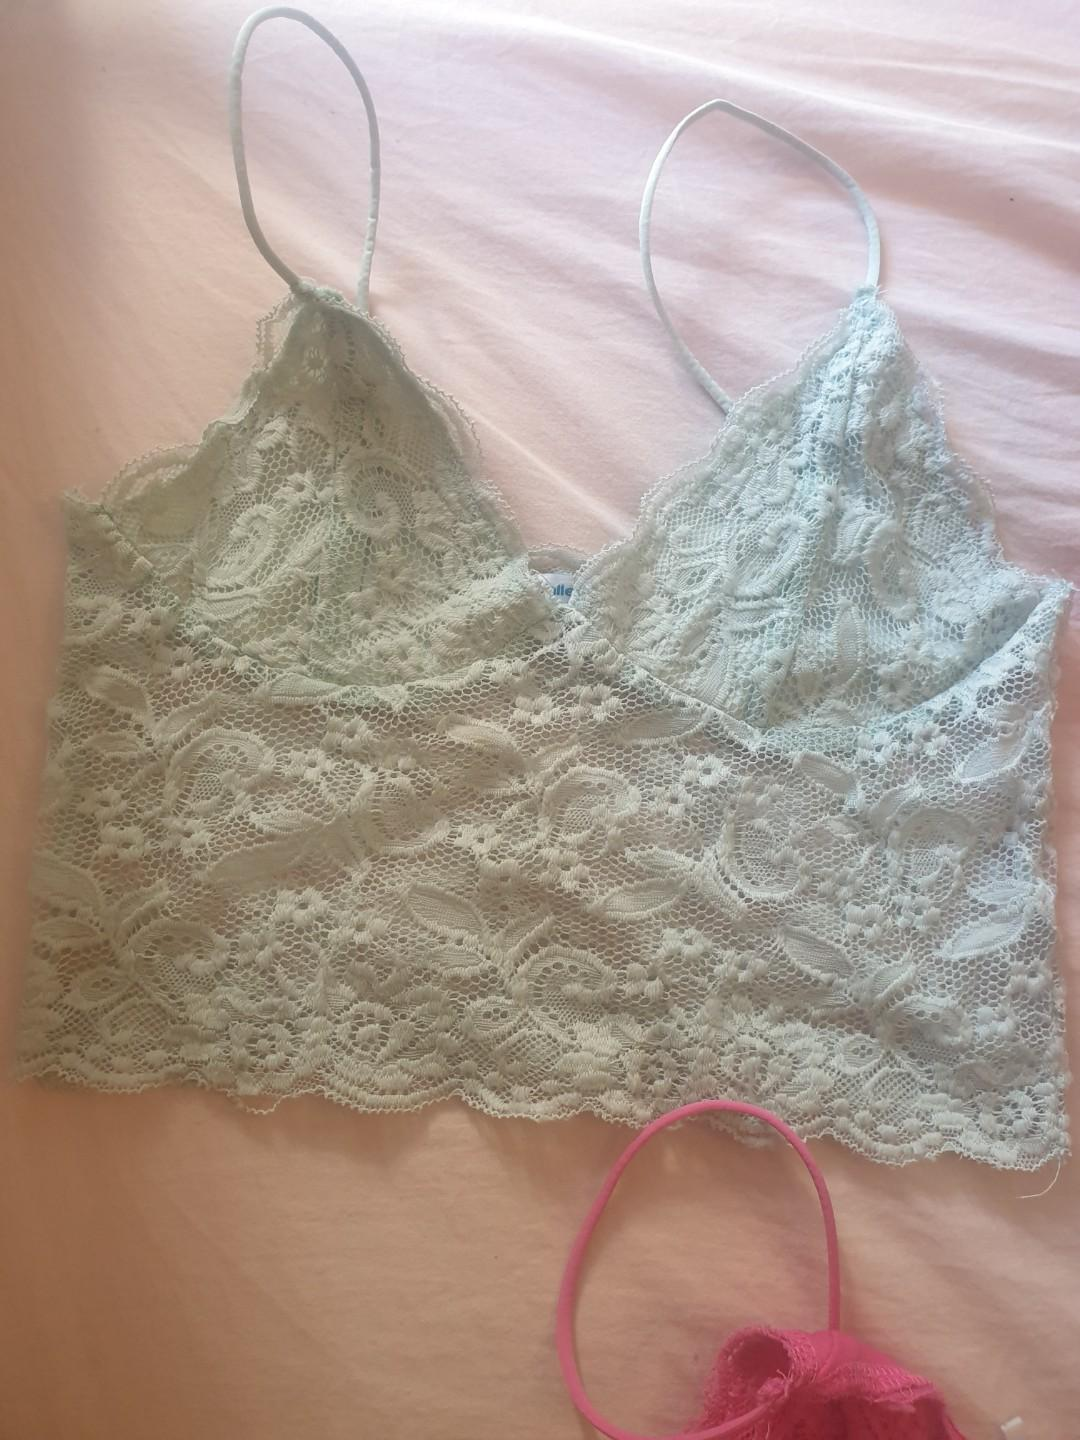 3x Lace Bralette Crop Tops Red Mint Pink Size Small